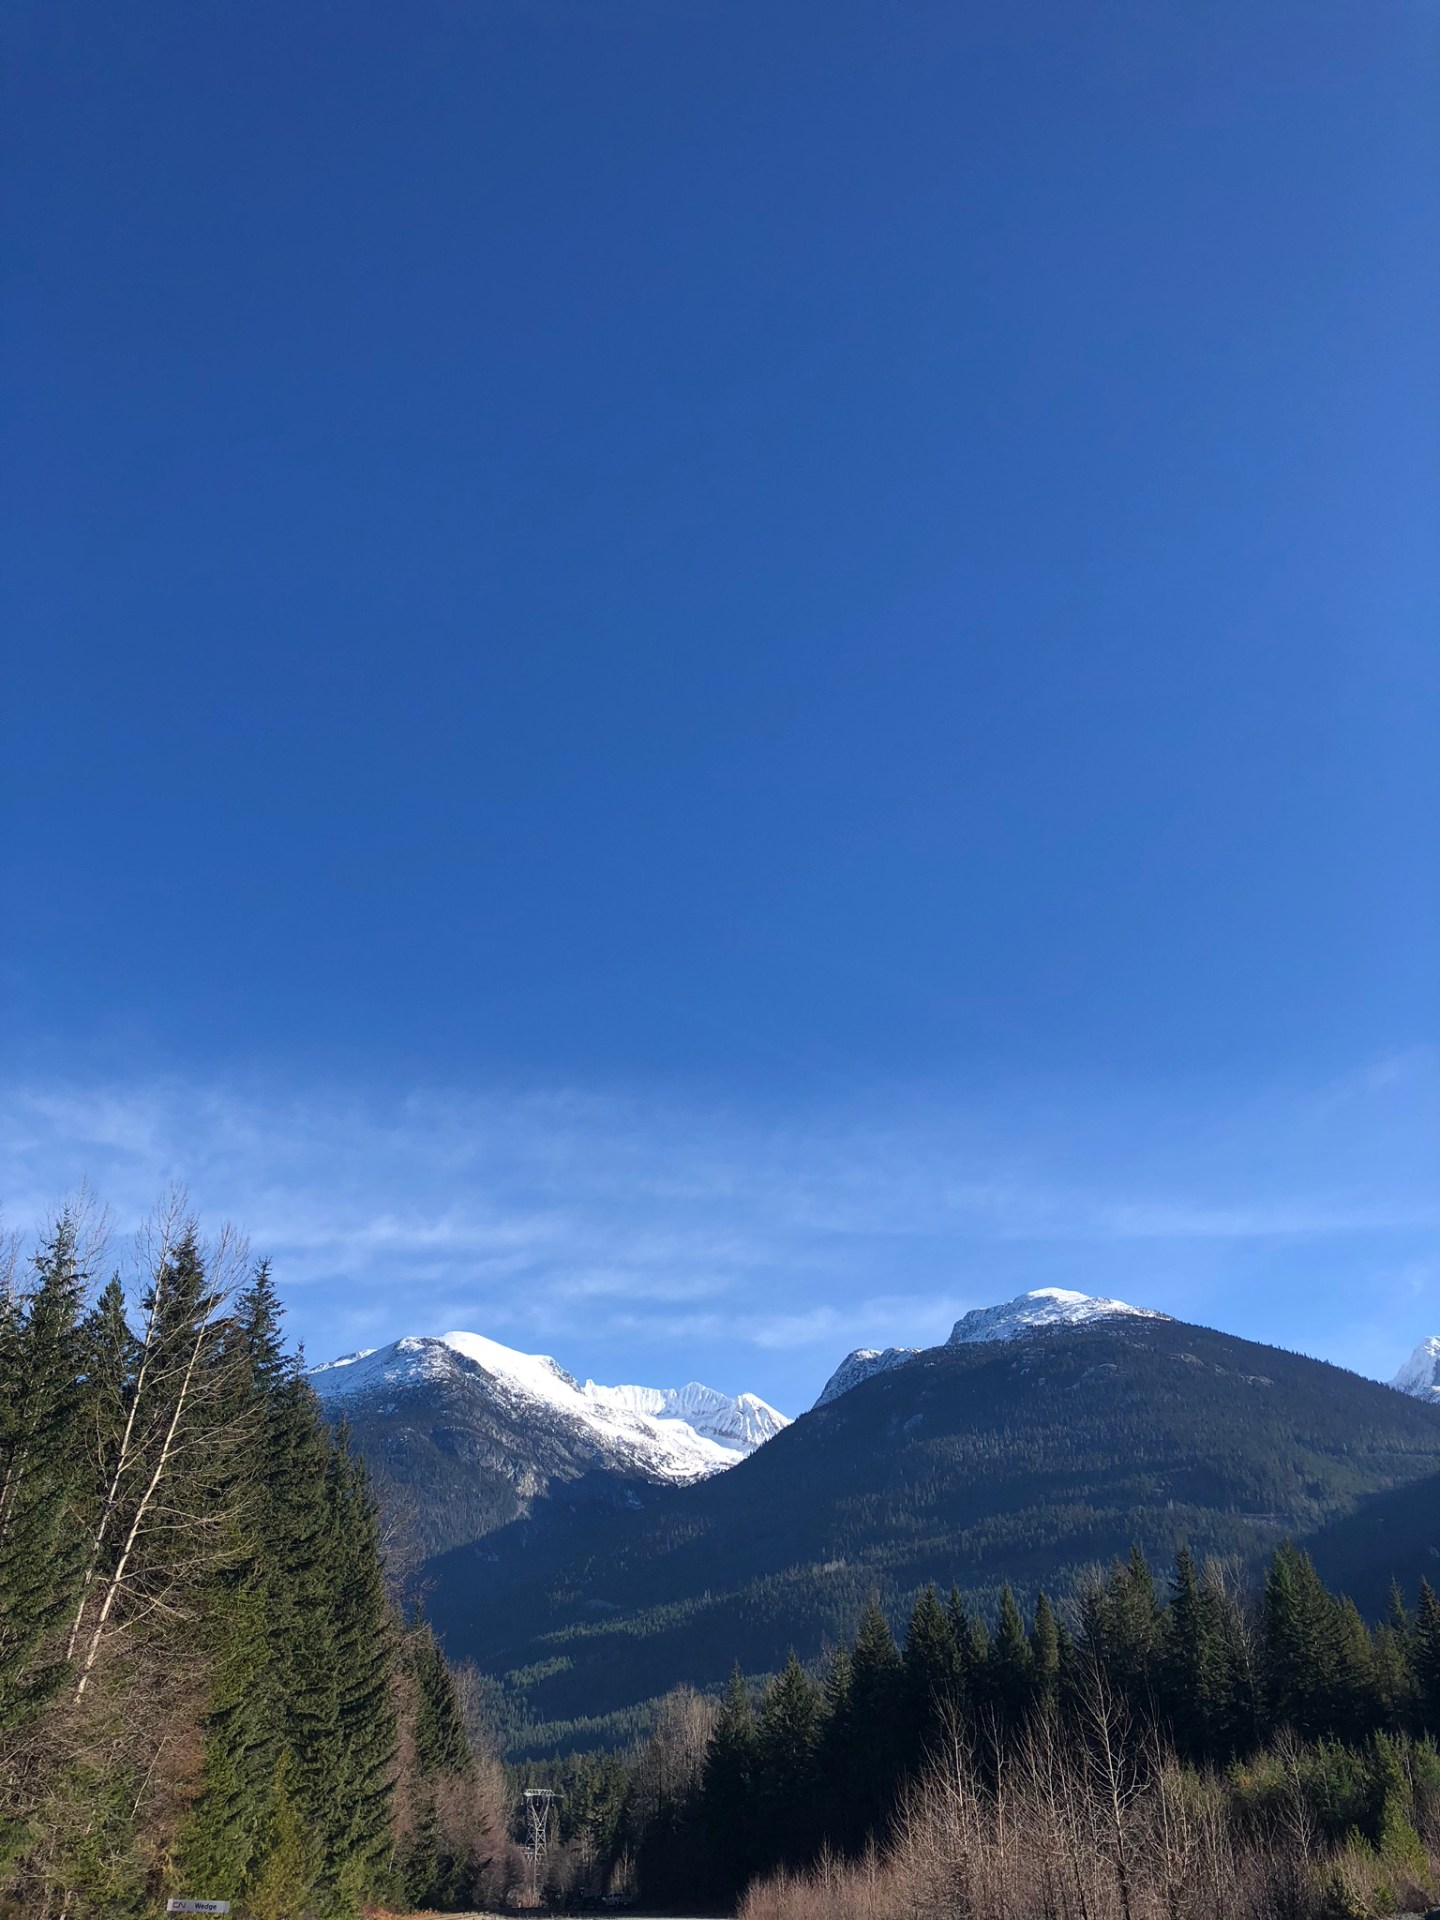 Beautiful mountain view near Whistler, British Columbia